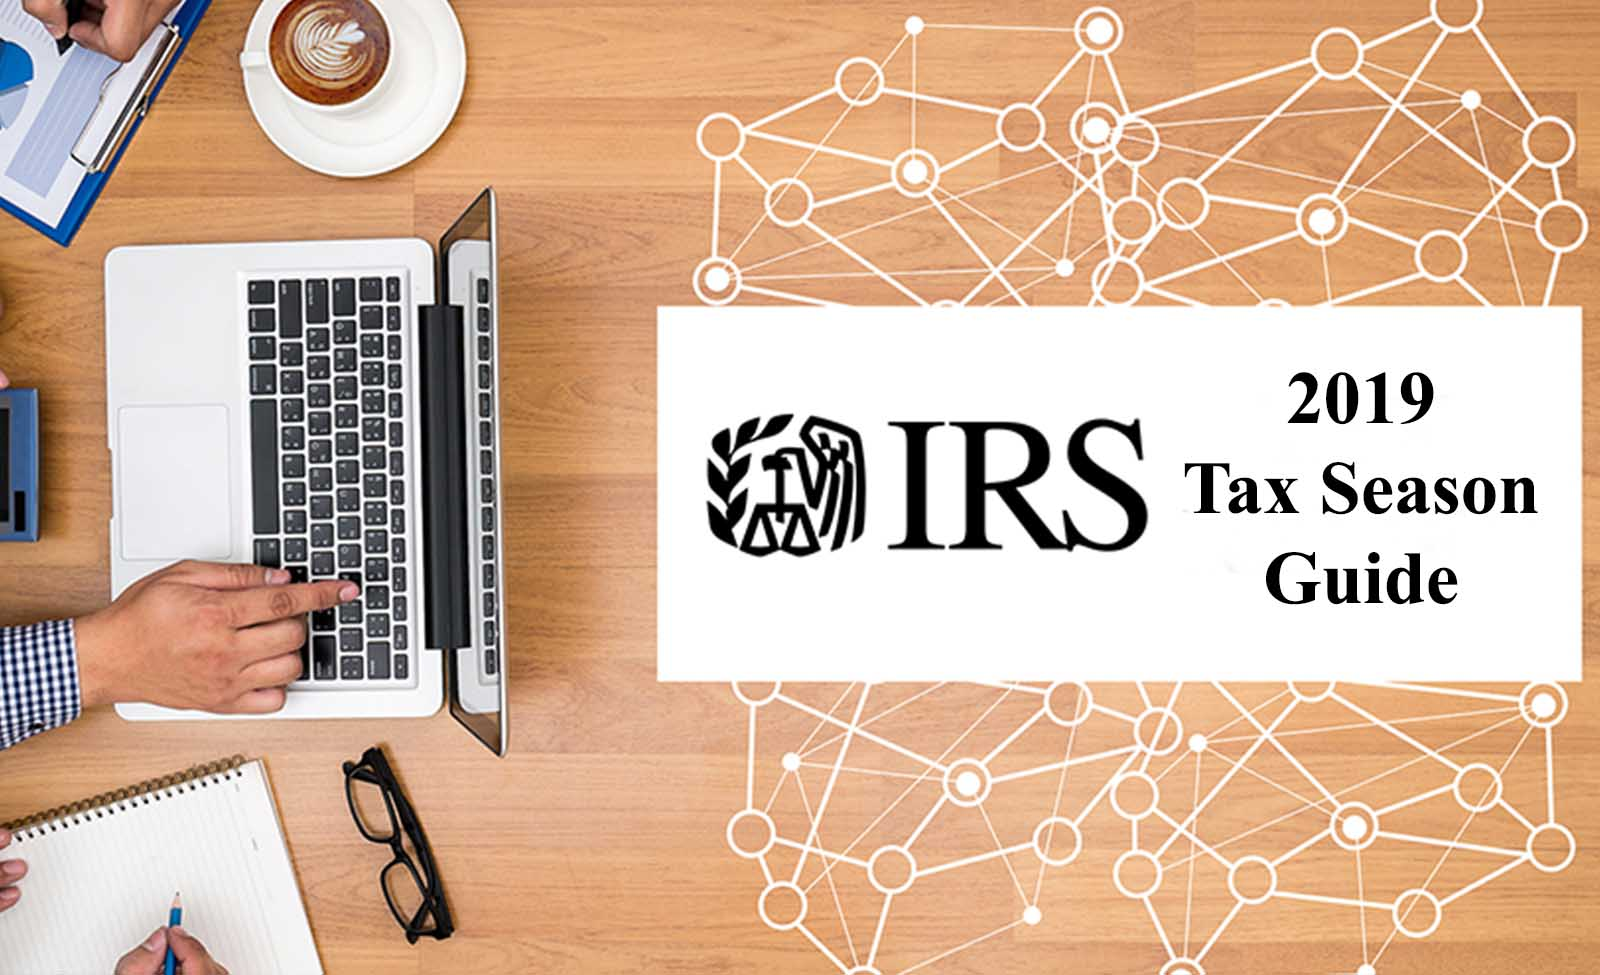 Learn everything you need to know about the 2019 Tax Season